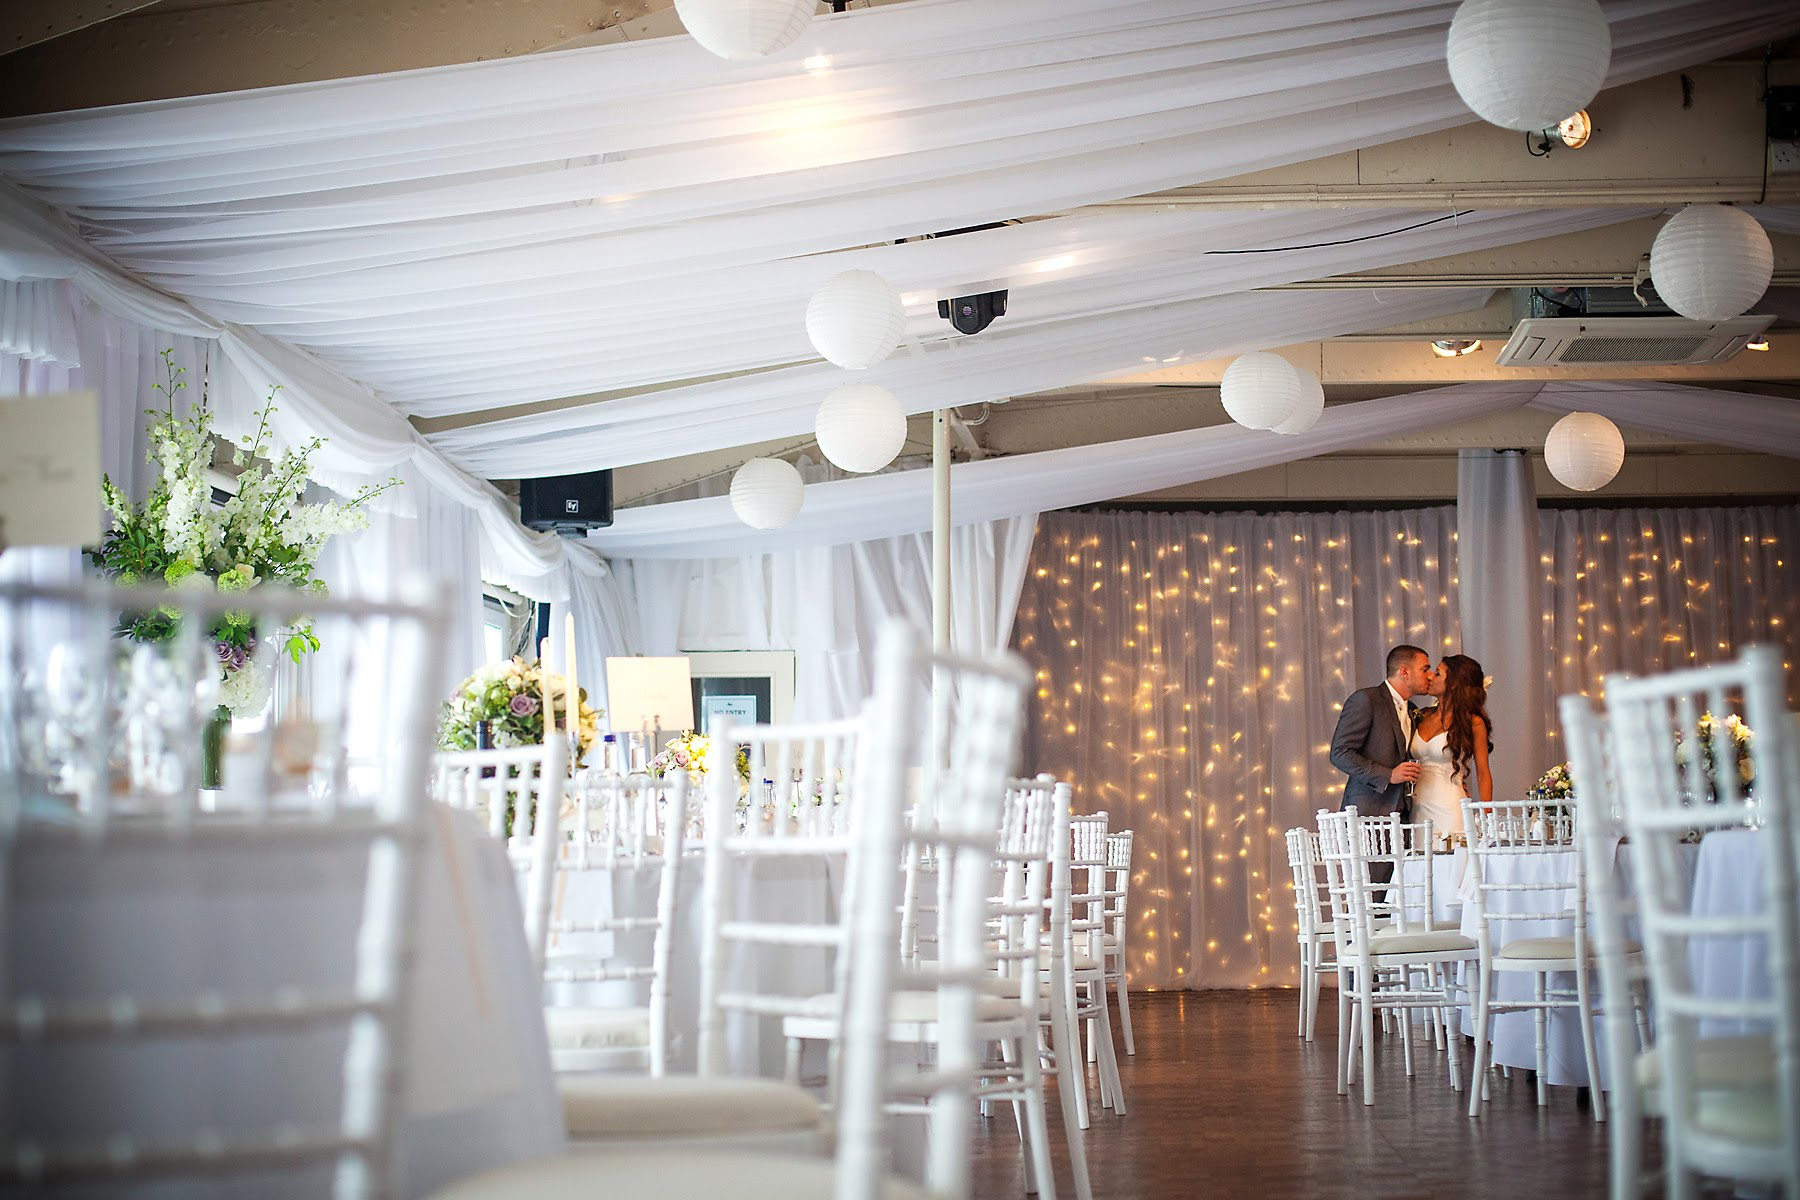 HMS President wedding decor hire with fairy light curtain ceiling drapes and paper lantern ceiling installation